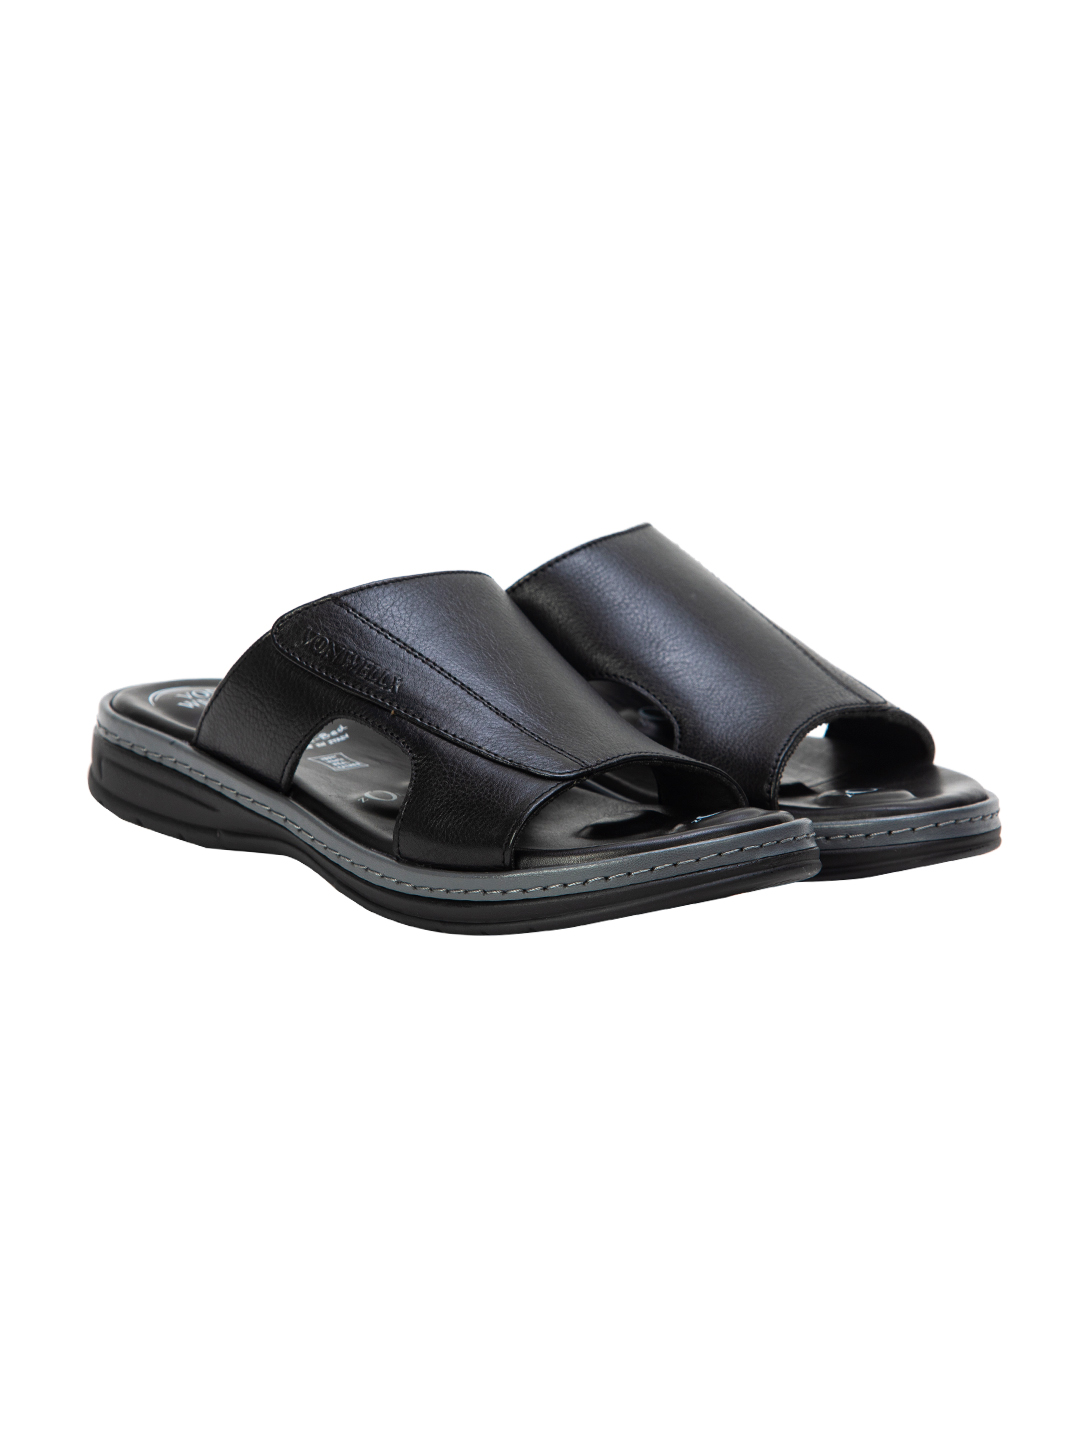 Buy VON WELLX GERMANY COMFORT SAUNTER BLACK SLIPPERS In Delhi